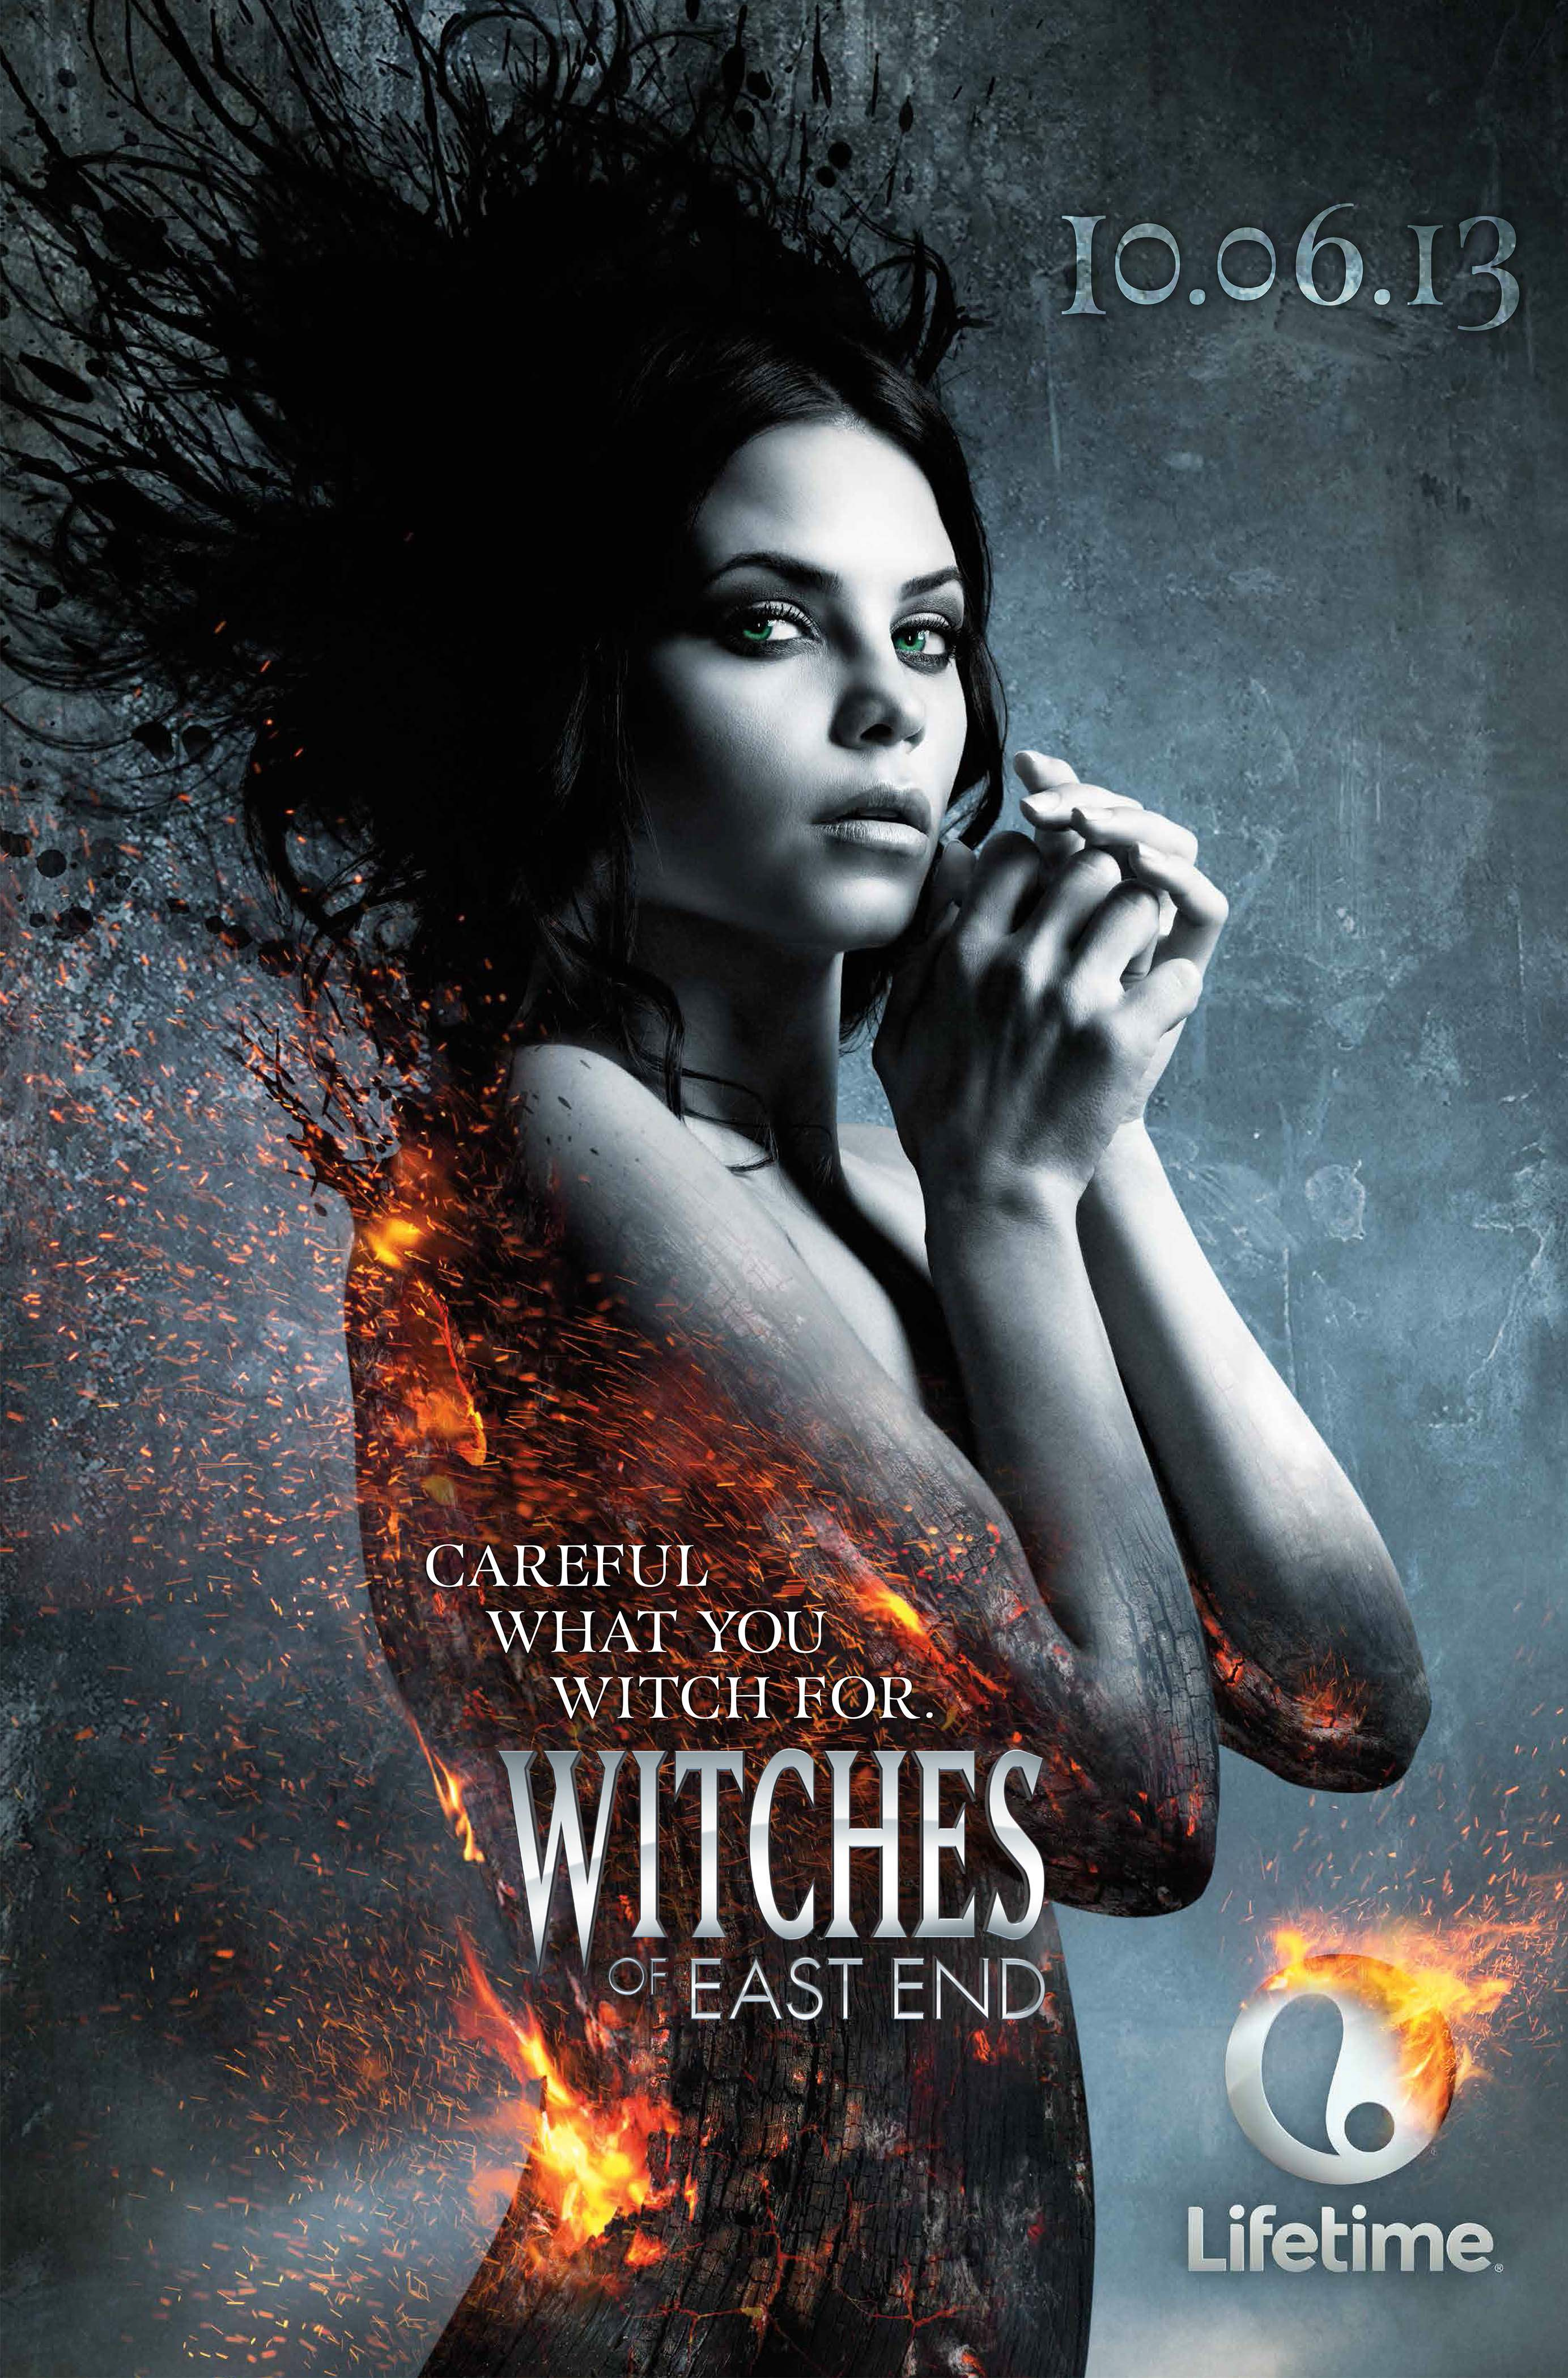 jenna-dewan-tatum-witches-of-east-end-freya